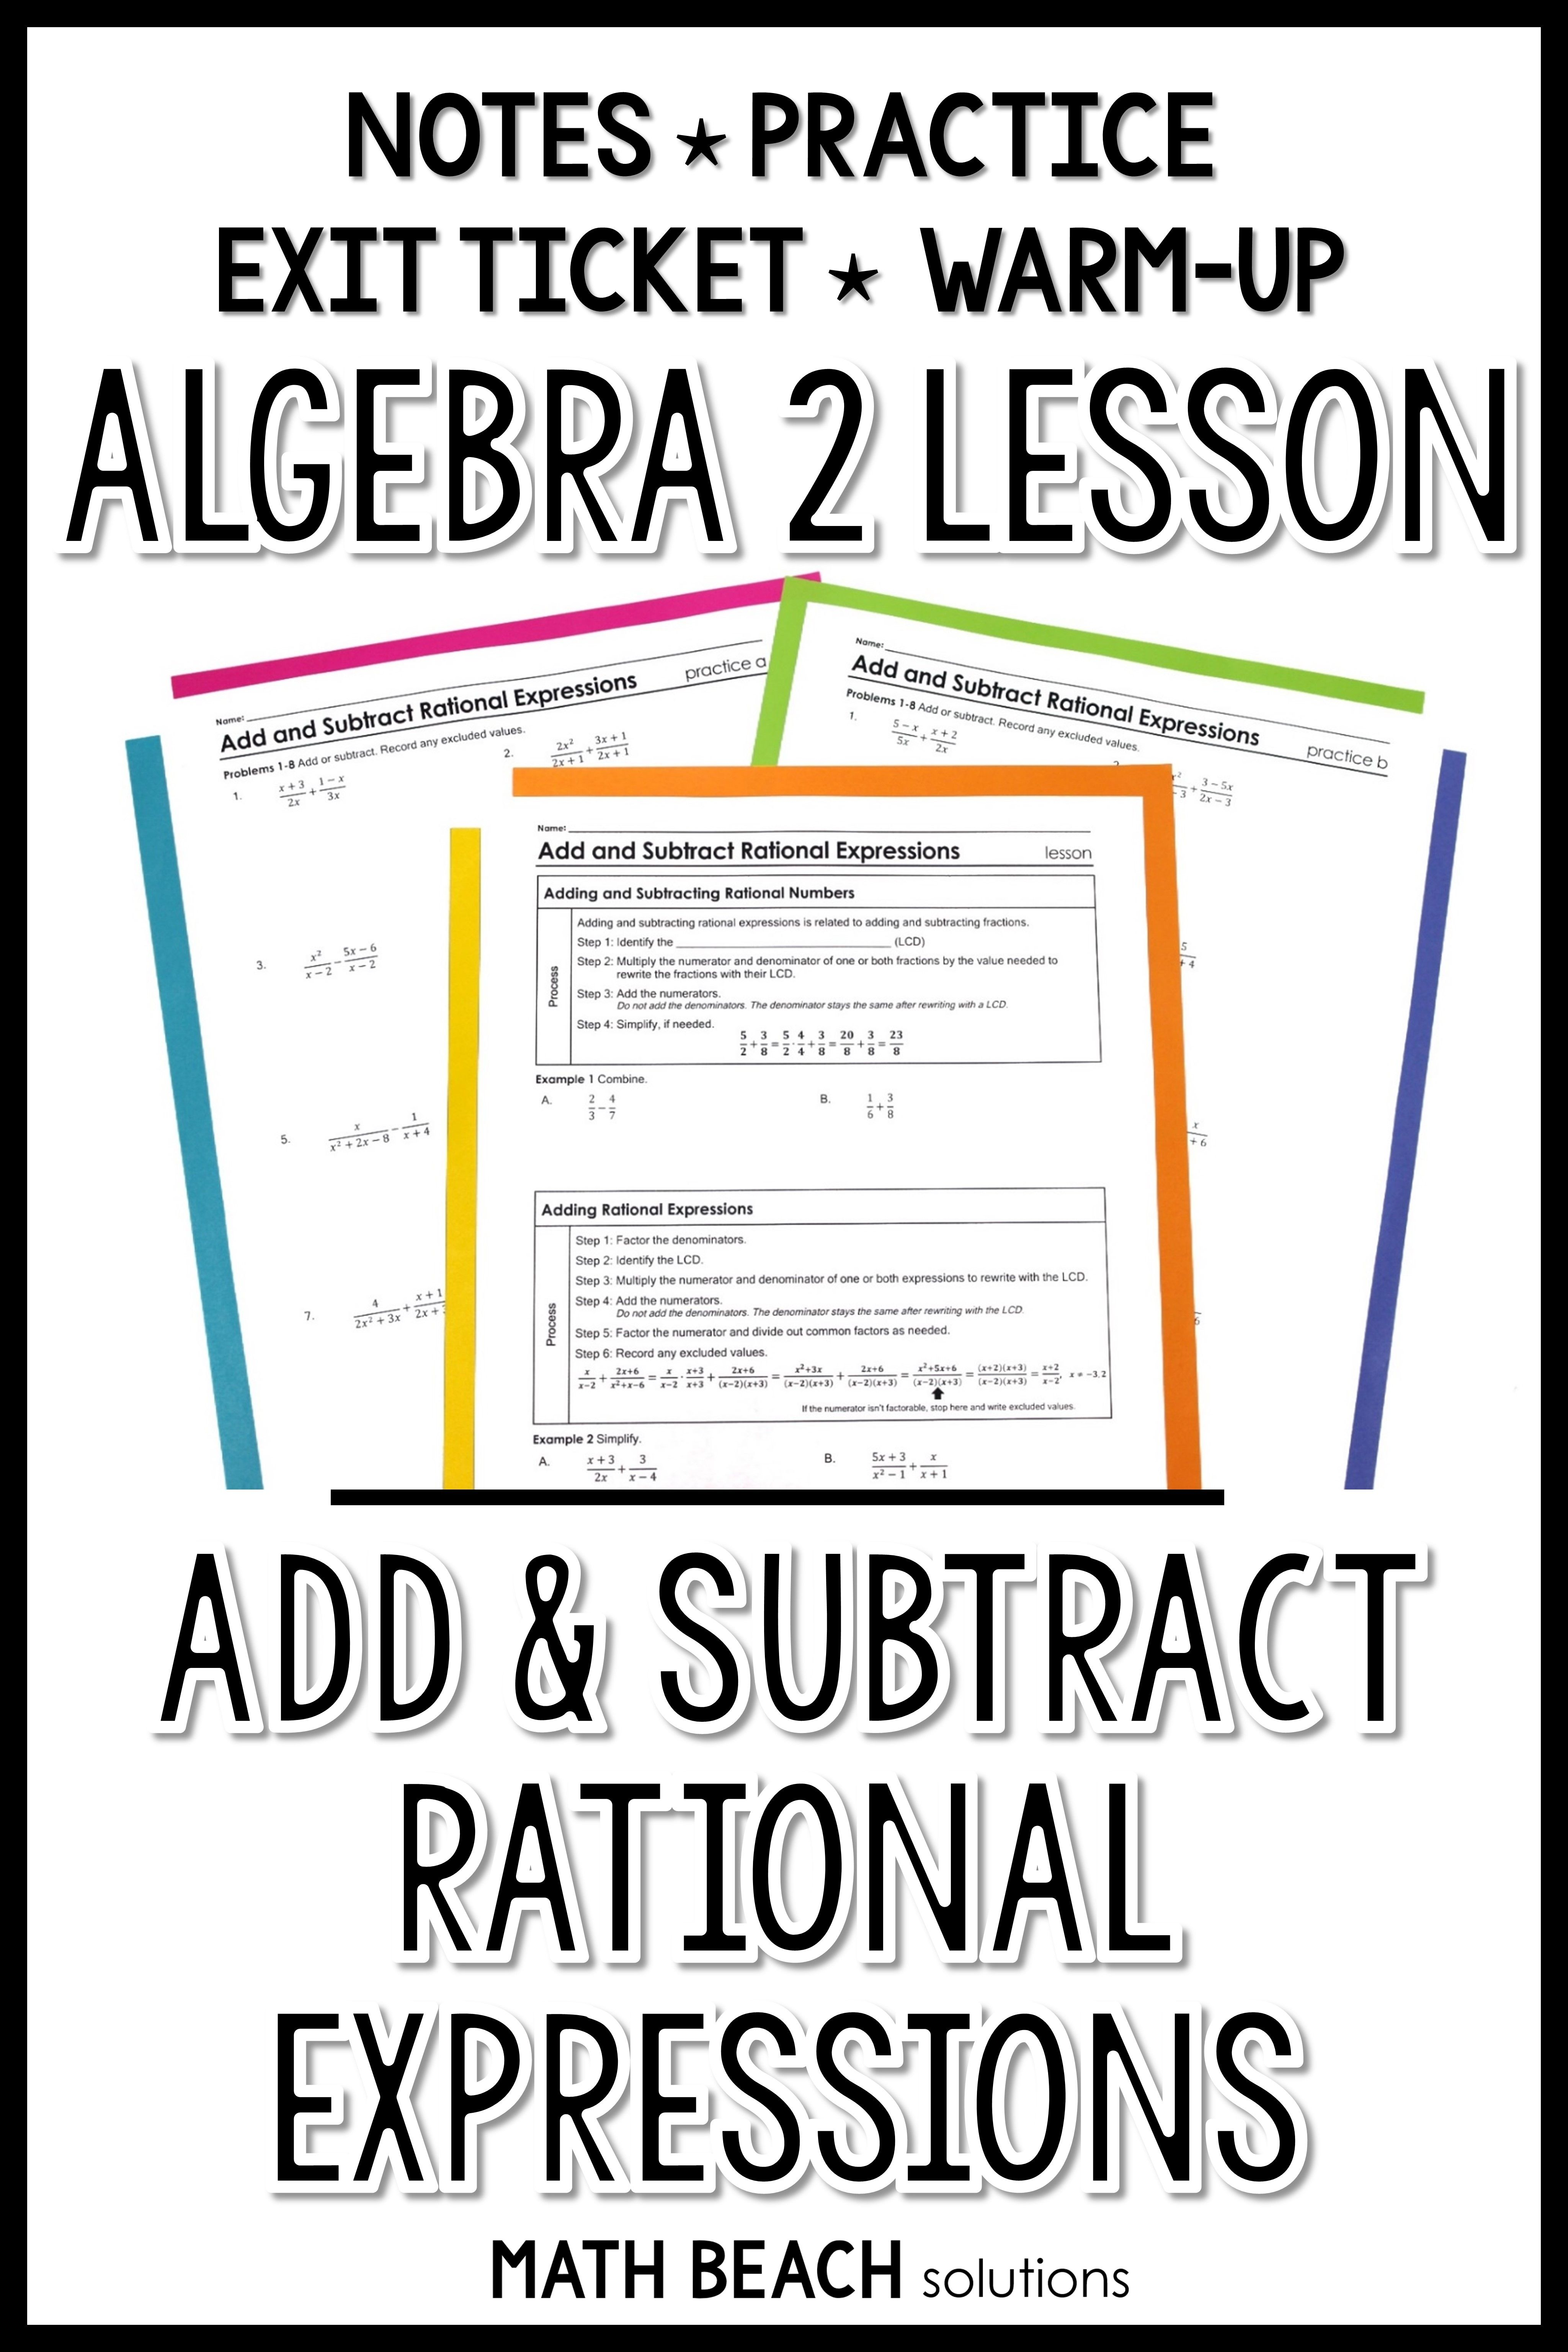 Add And Subtract Rational Expressions Lesson Rational Expressions Math Expressions Algebra Lesson Plans